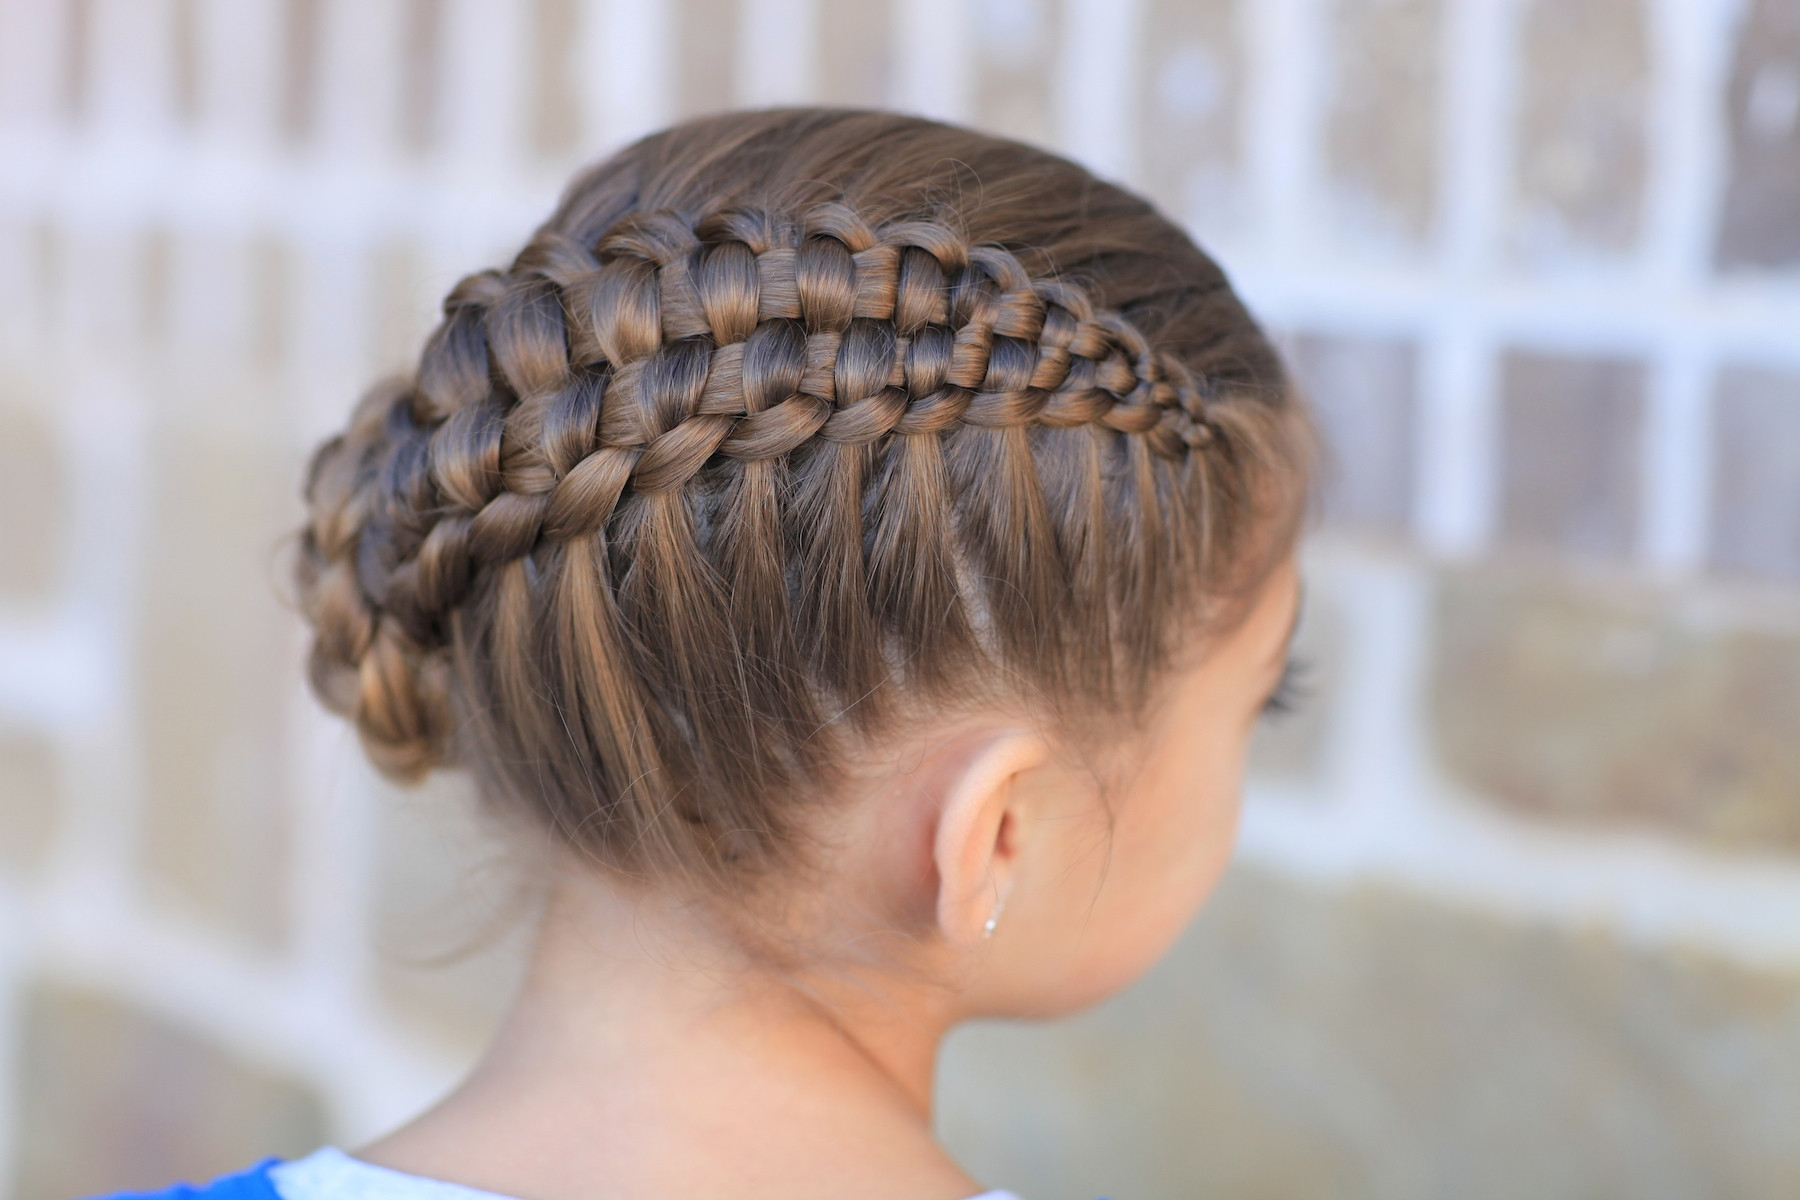 Cute Hairstyles For Braids  How to Create a Zipper Braid Updo Hairstyles